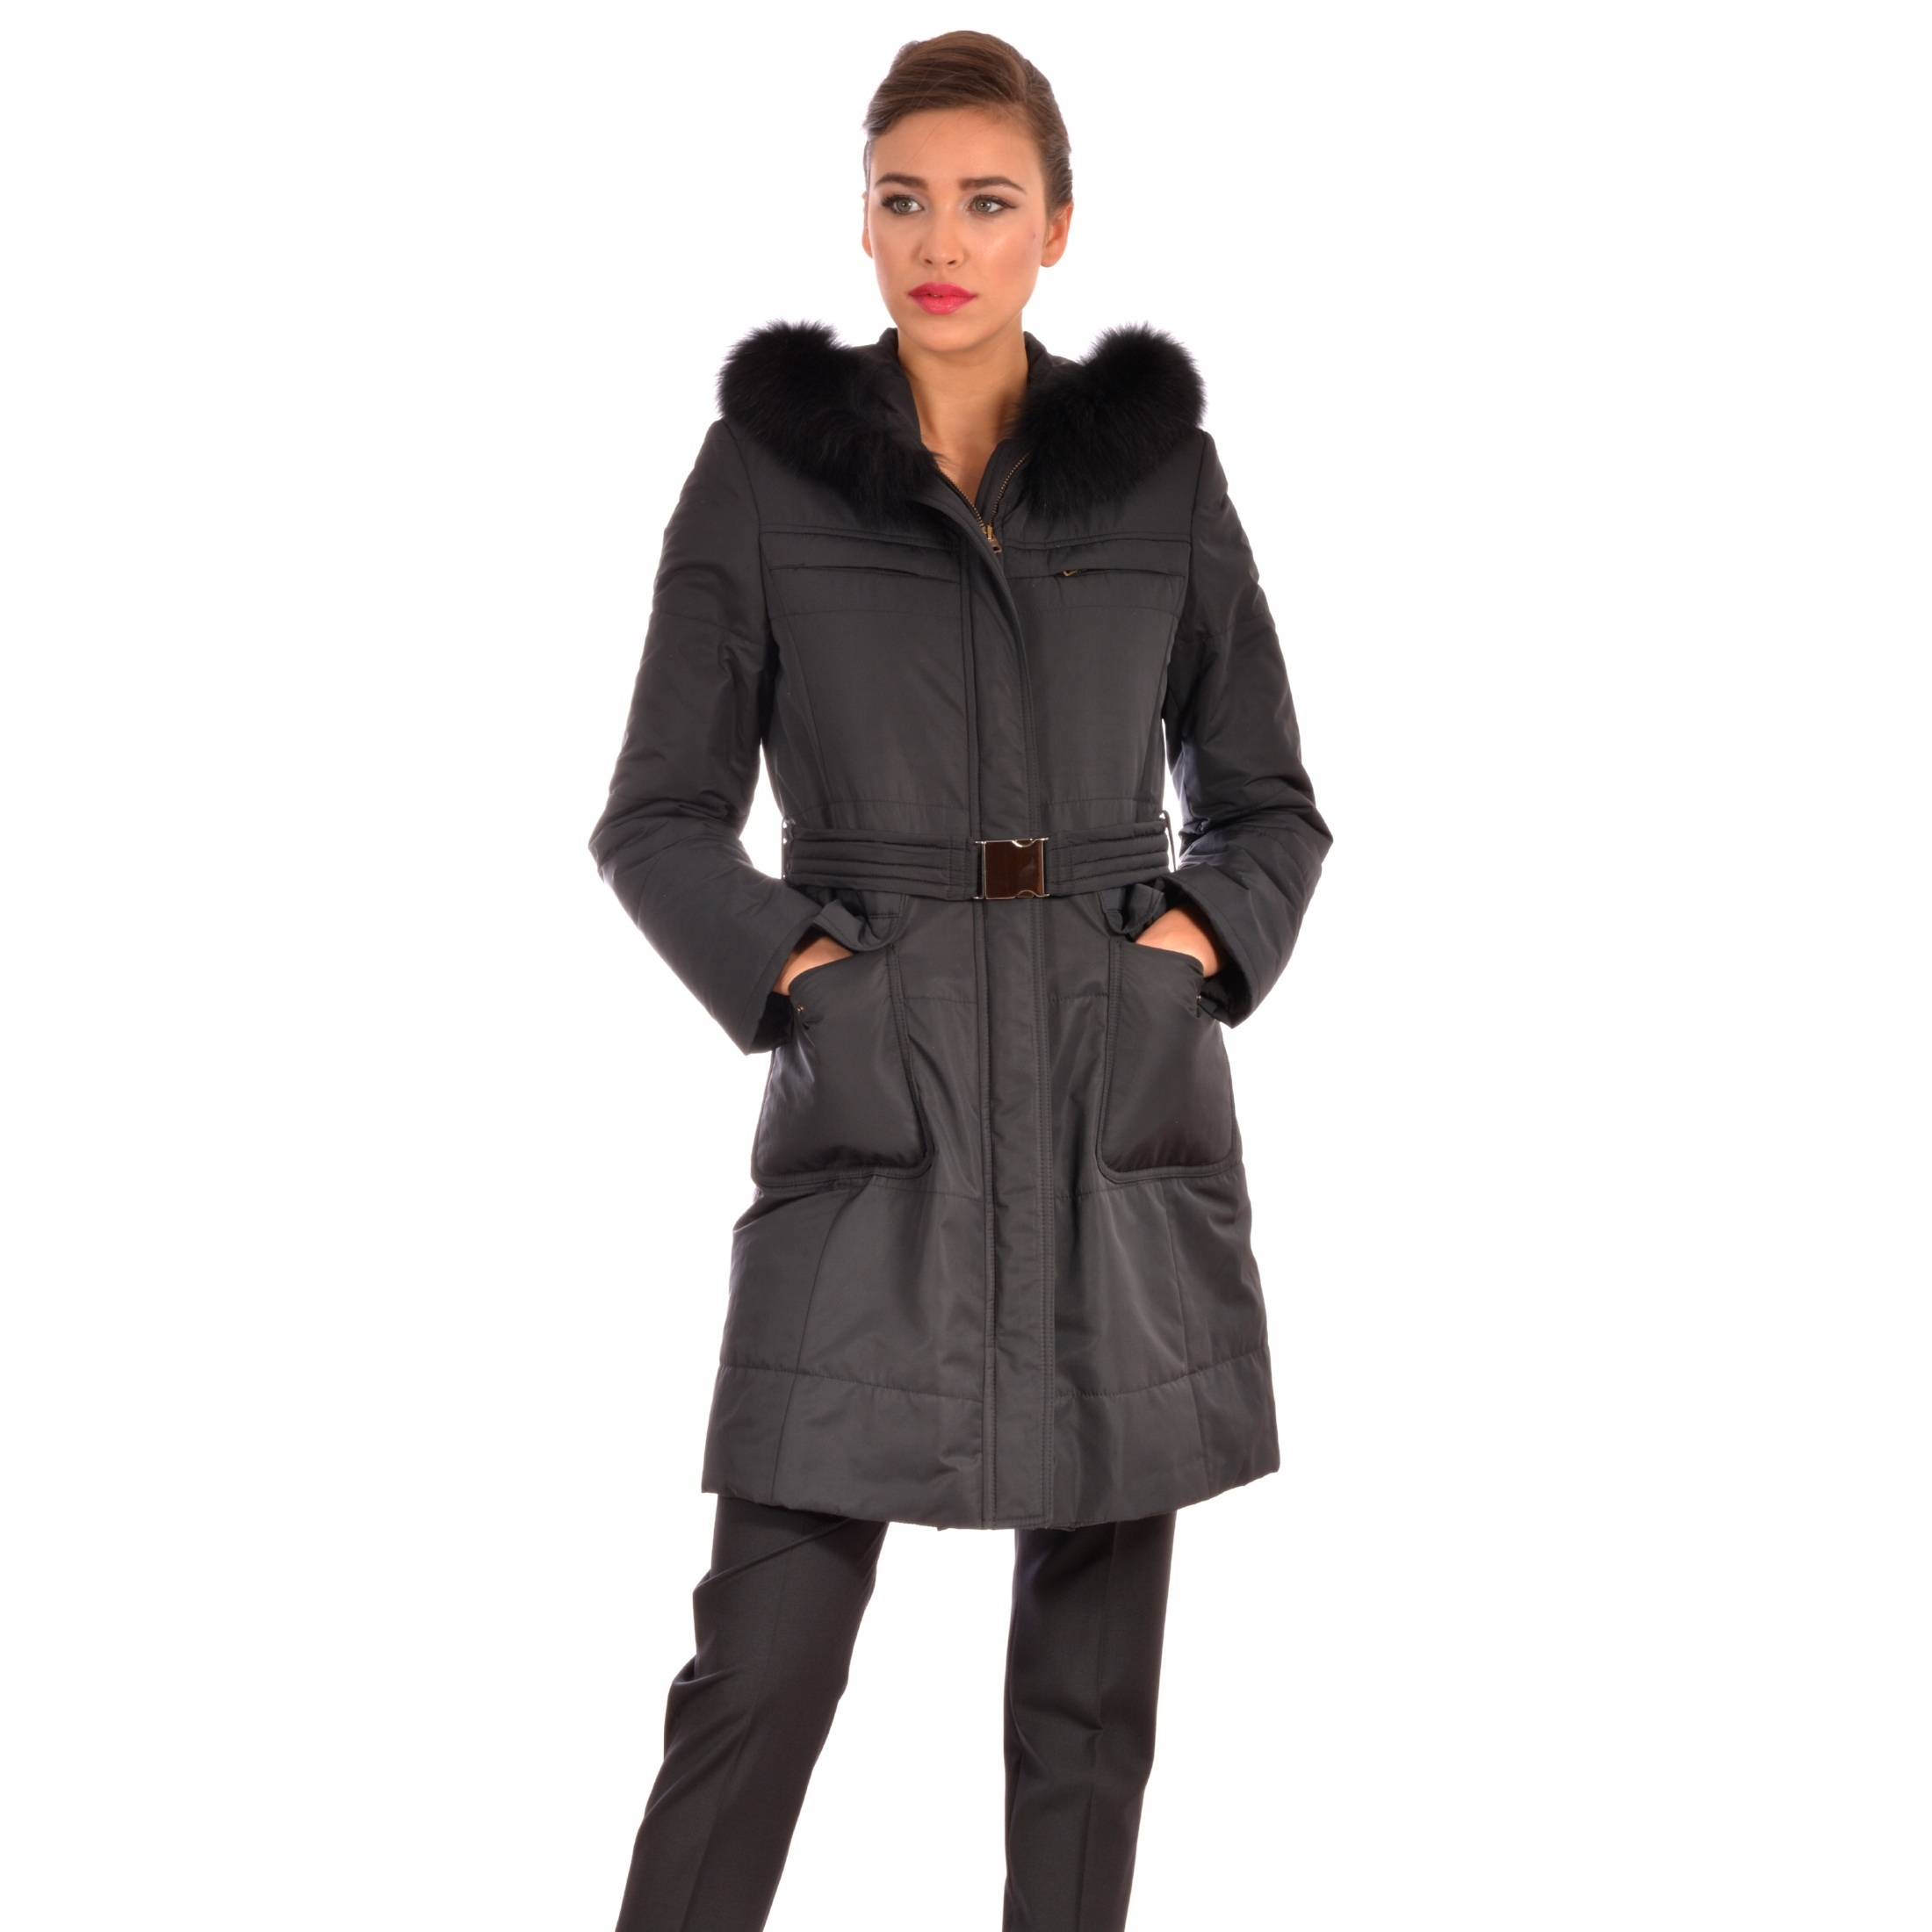 Bild von Women's Jacket with Hood - LM40779